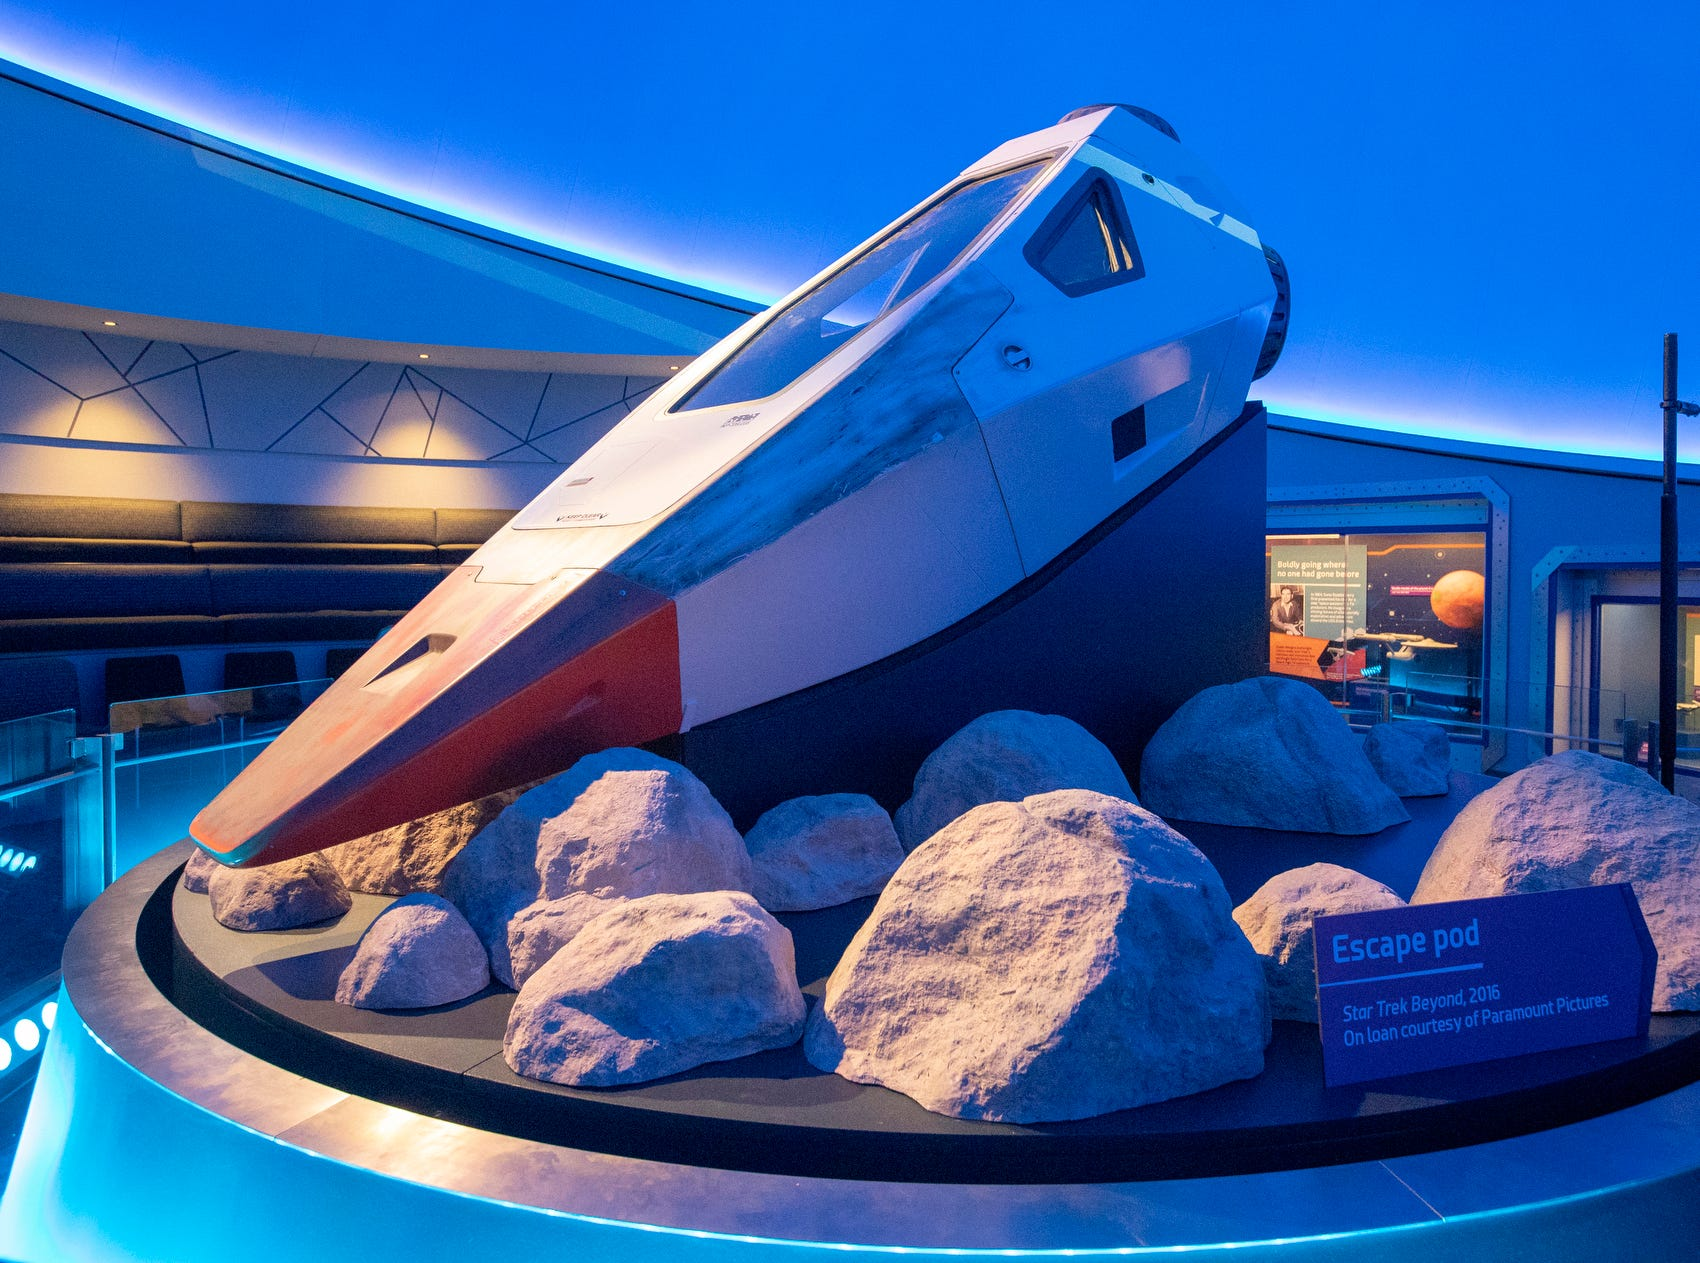 """An escape pod from the 2016 film """"Star Trek Beyond"""" is seen at The Children's Museum of Indianapolis, Wednesday, Jan. 23, 2019. The """"Star Trek: Exploring New Worlds"""" exhibit is made up of set pieces, ship models and outfits used during various Star Trek shows and movies and is on display at the museum from Feb. 2 through April 7, 2019."""